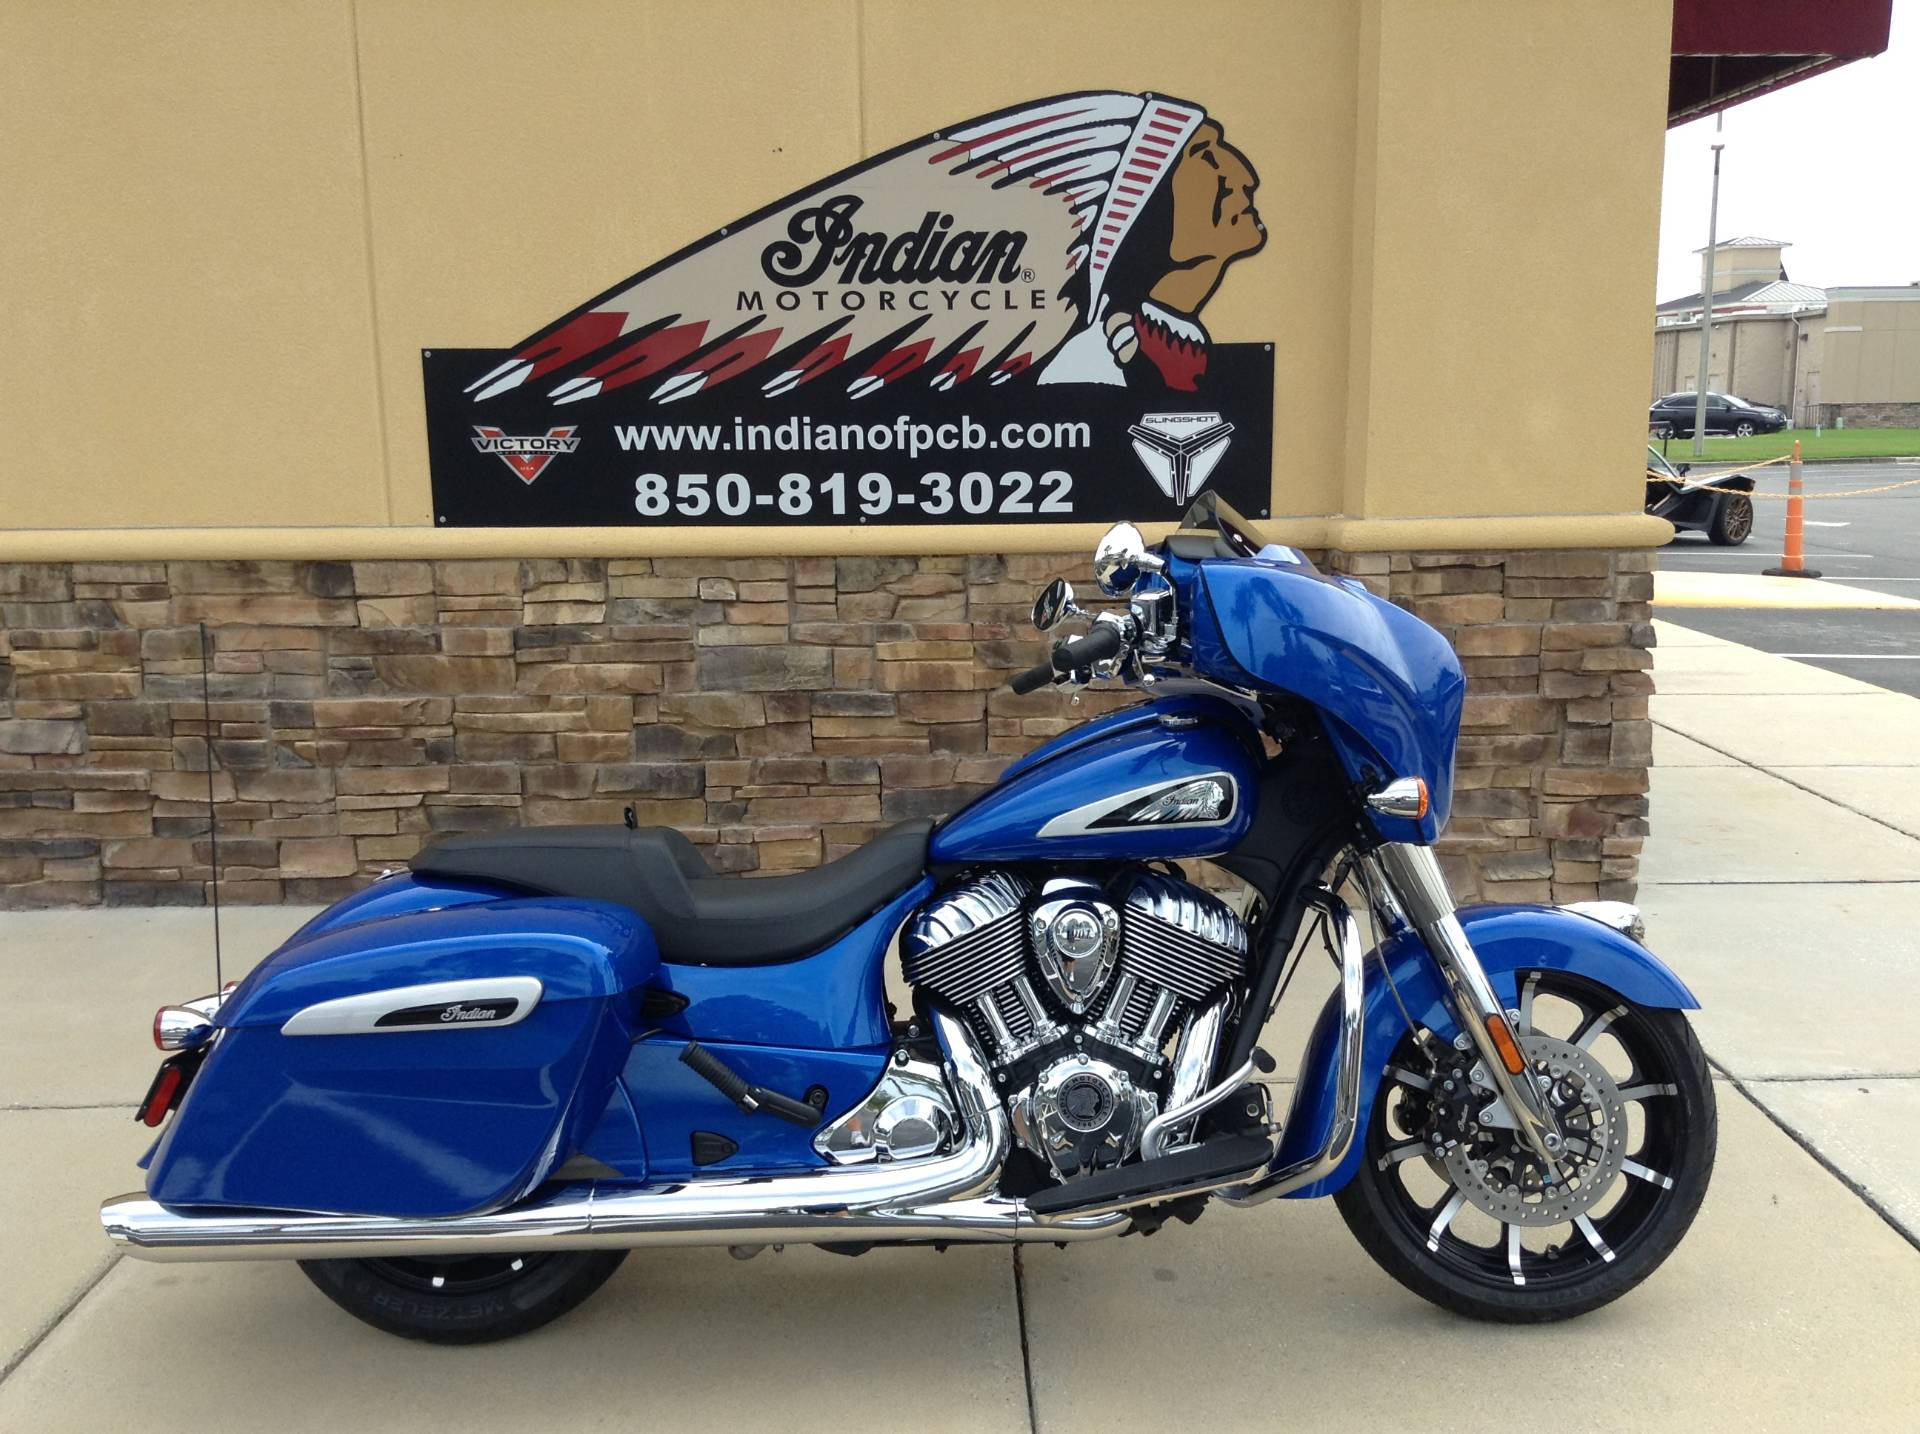 2021 Indian CHIEFTAIN LIMITED in Panama City Beach, Florida - Photo 1